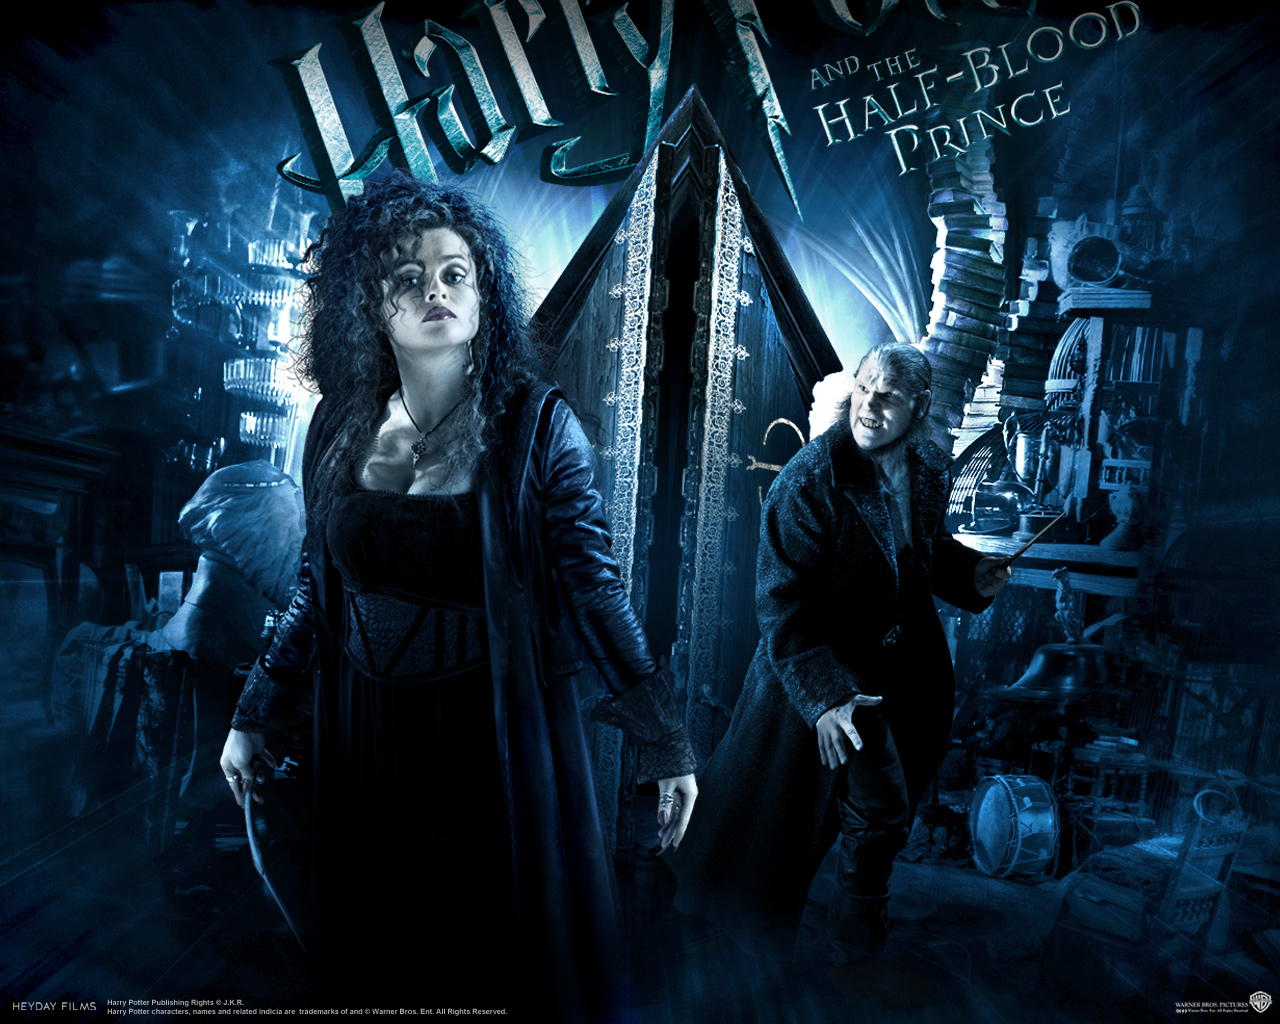 Desktop Wallpapers Harry Potter Harry Potter and the Half-Blood Prince film Movies